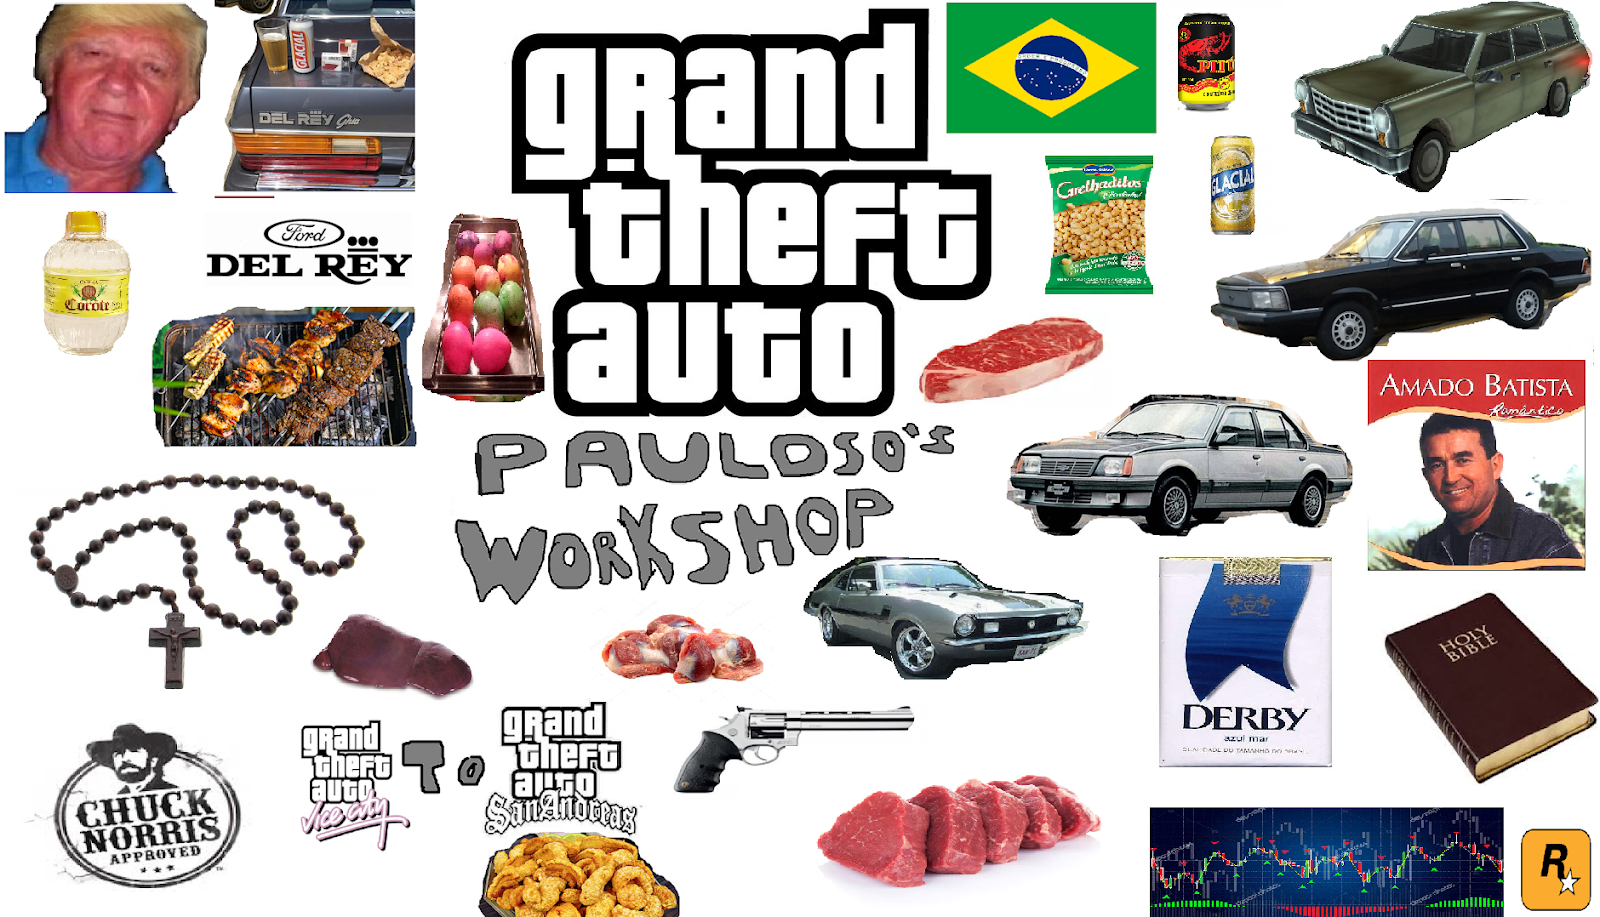 Pauloso+Works.png